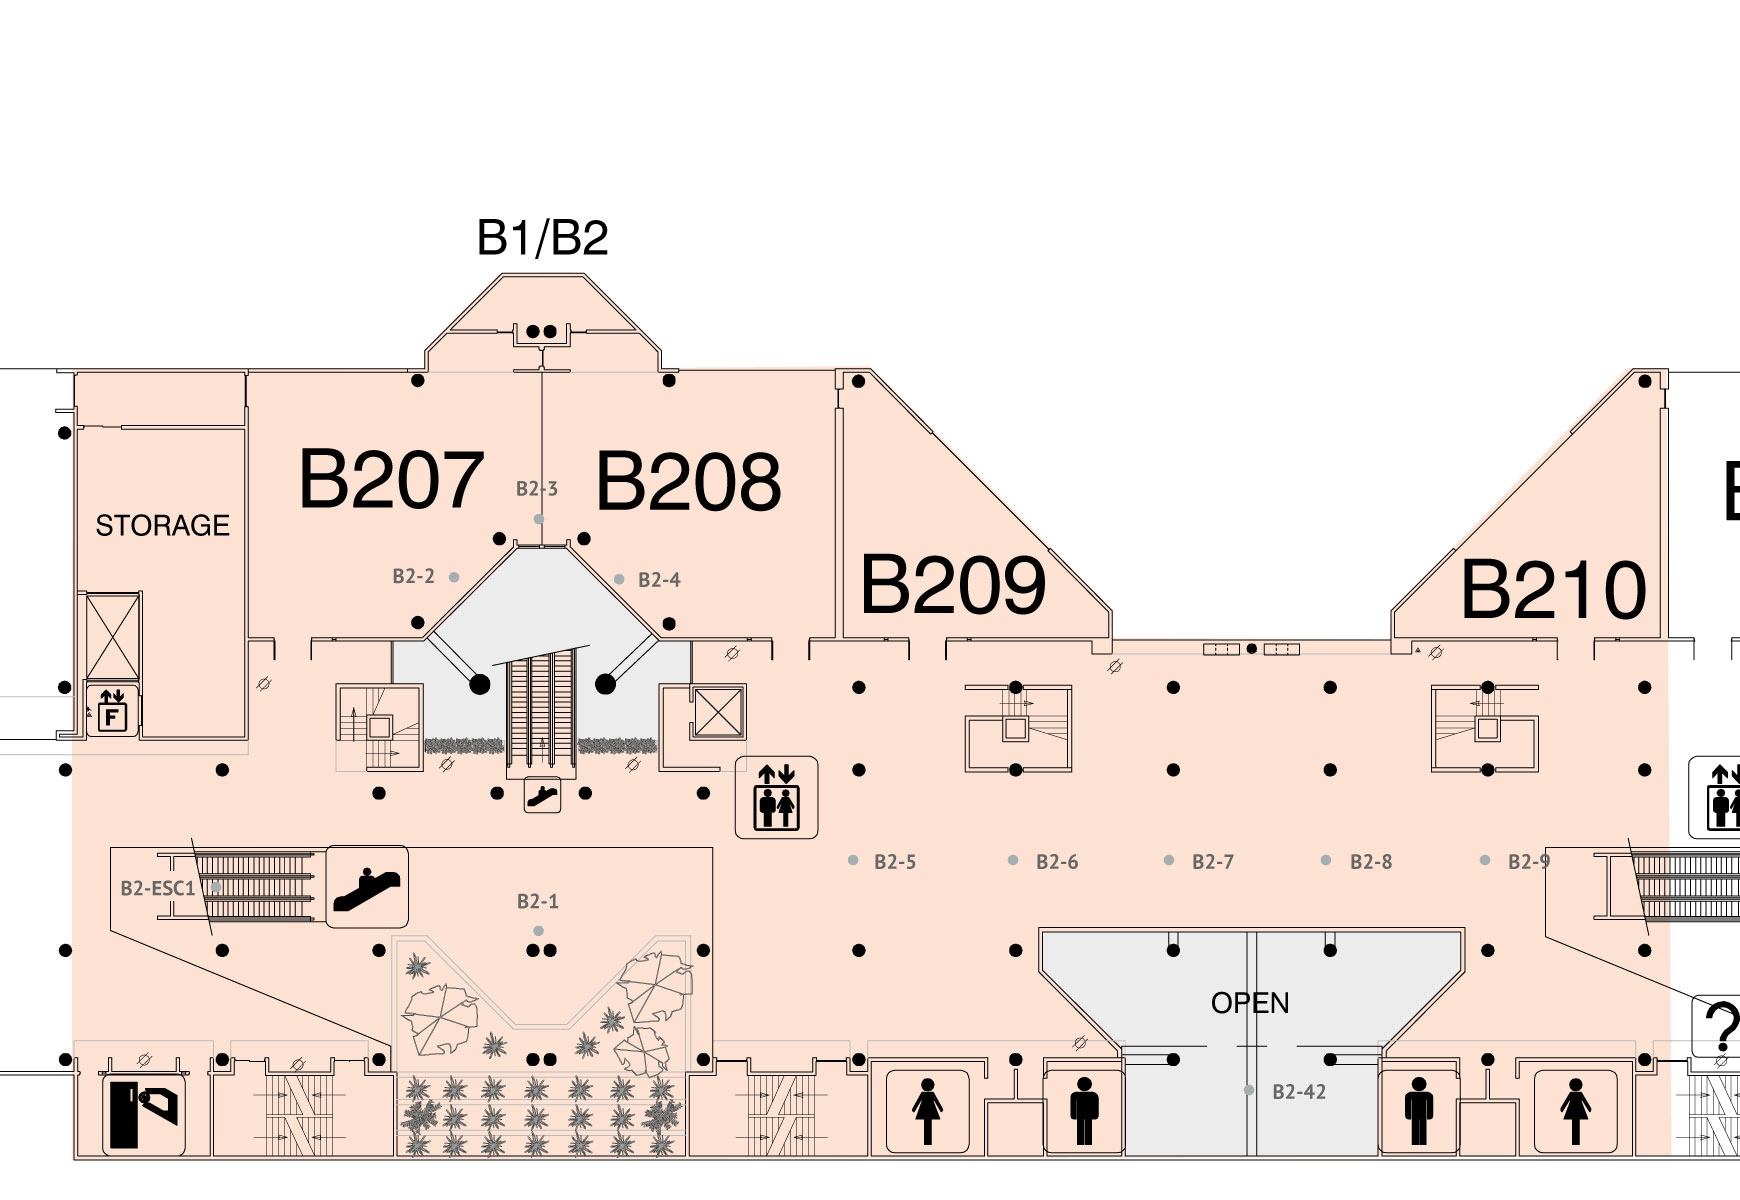 Section B2-B